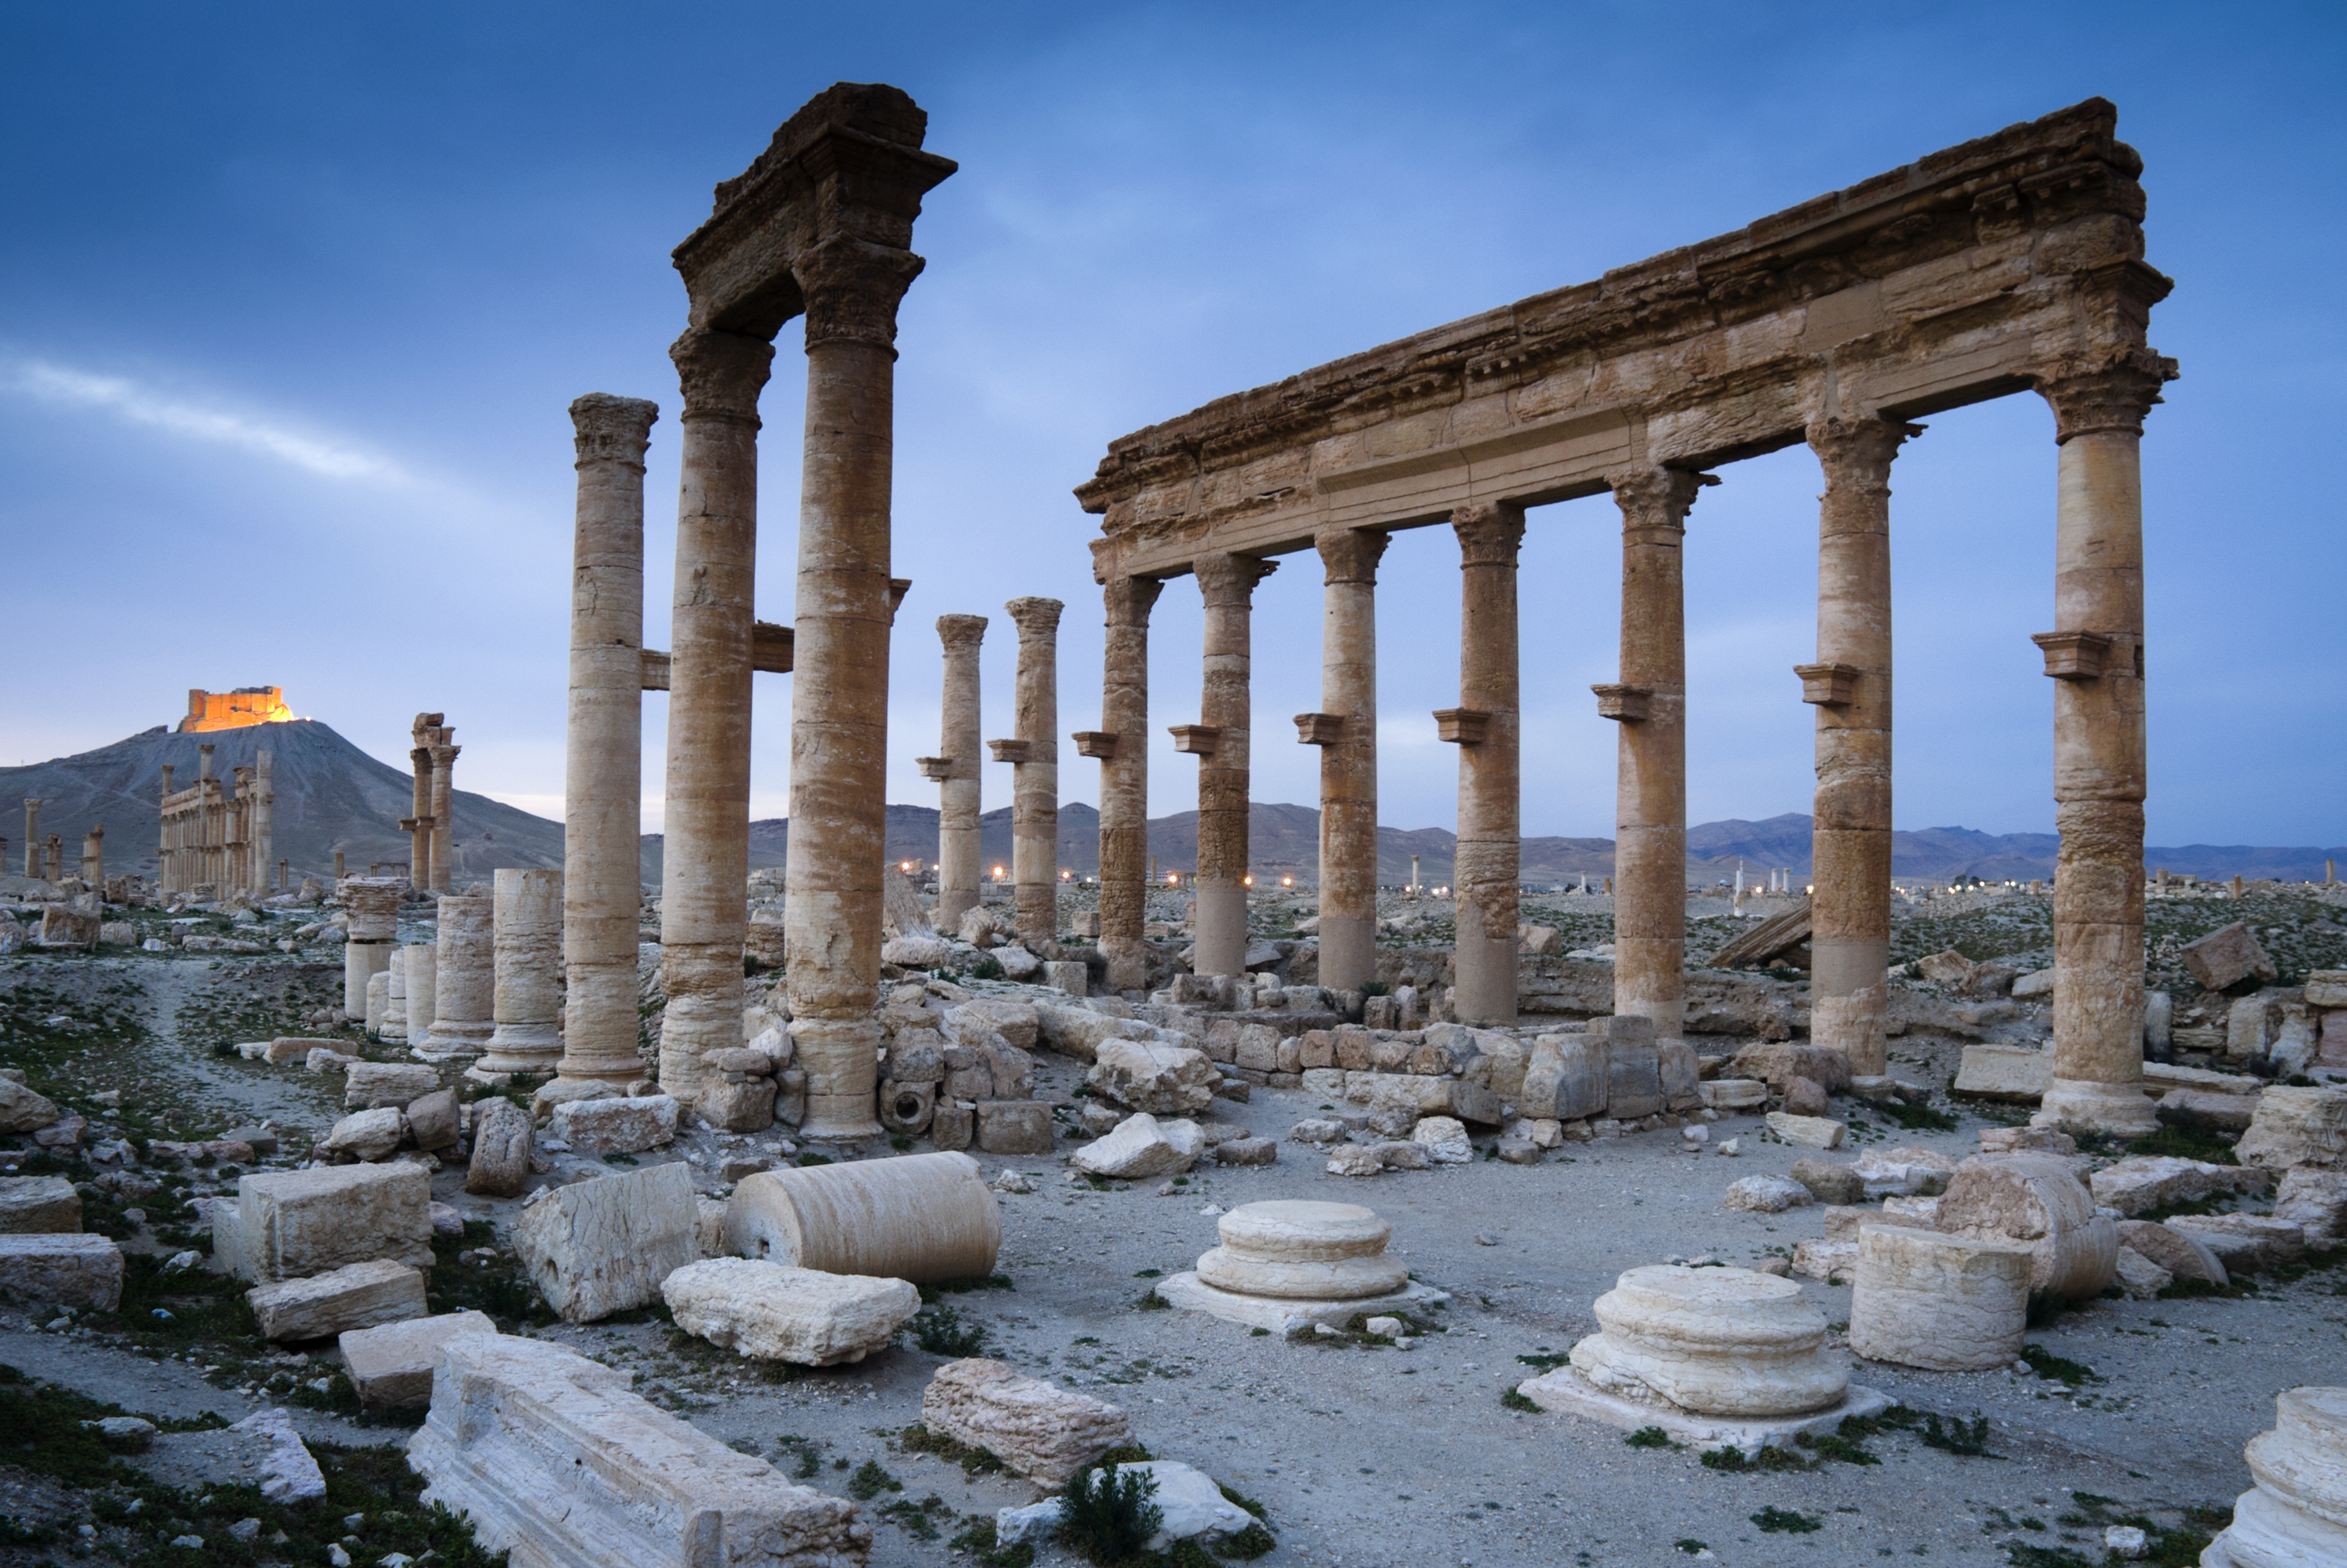 Ruins of Palmyra in Syria